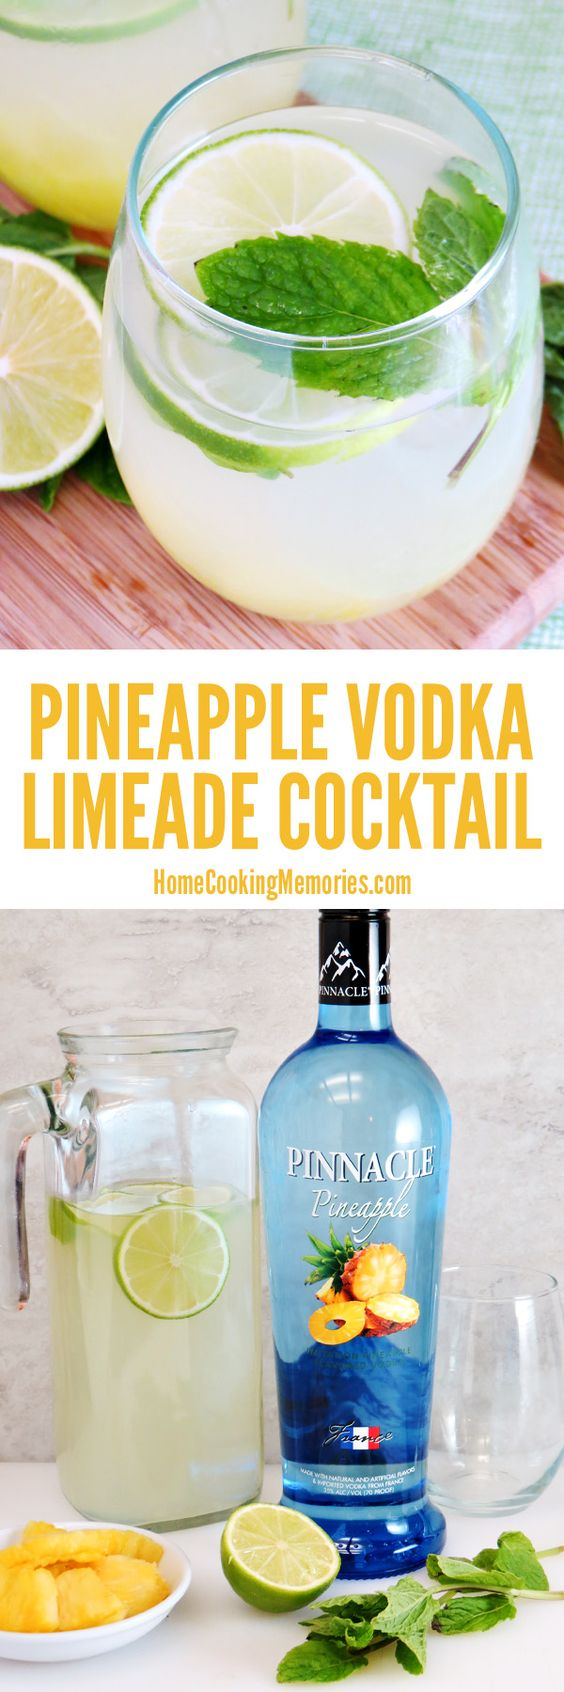 Pineapple vodka easy cocktails and vodka on pinterest for Vodka mixed drink recipes simple